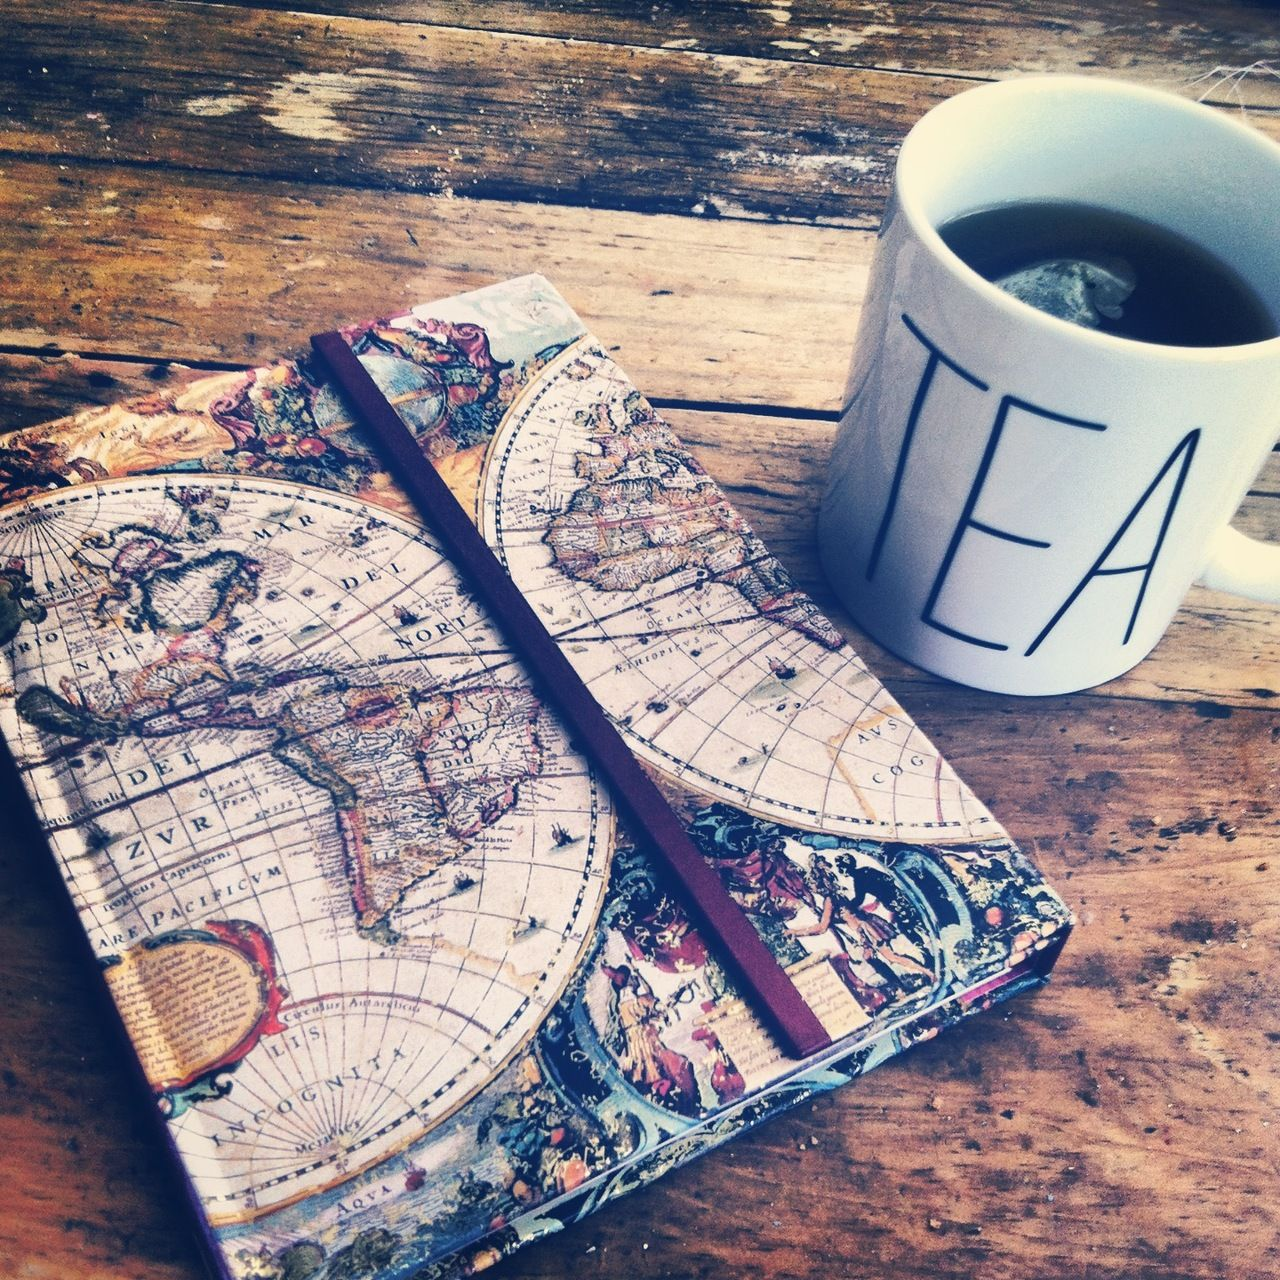 anddarlingthisthing: i picked up a new journal + a new mug today. we need to find lots of rad mugs this summer!